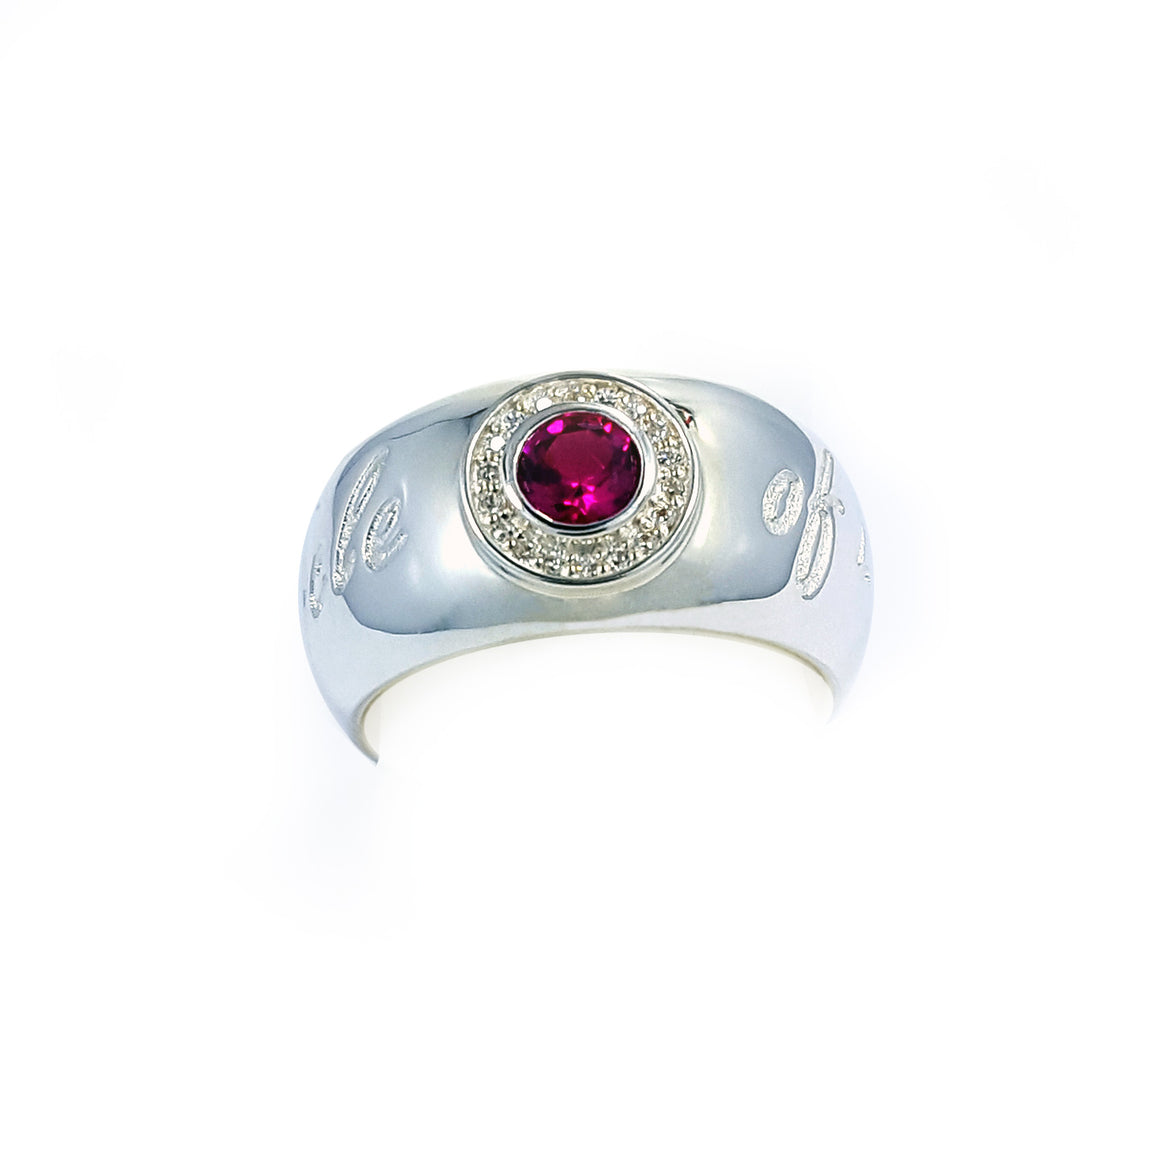 Sliver ring with red corundum & crystals